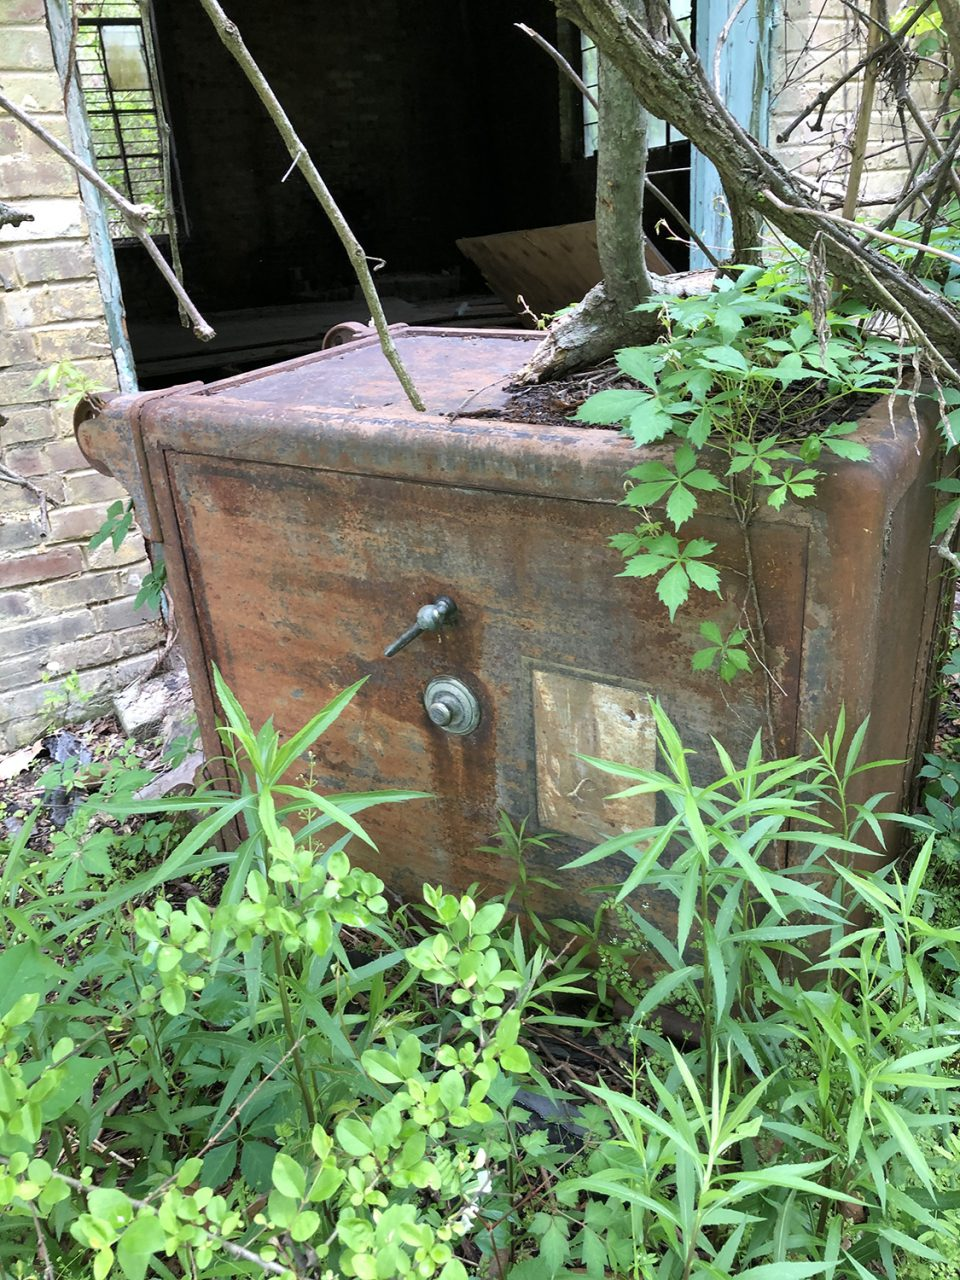 There's a rusty old Mosler safe lying in the weeds along the side of the ruined R.C. Tibbs & Sons building in Hushpuckena. Photograph copyright 2021 by Keith Dotson. All rights reserved.